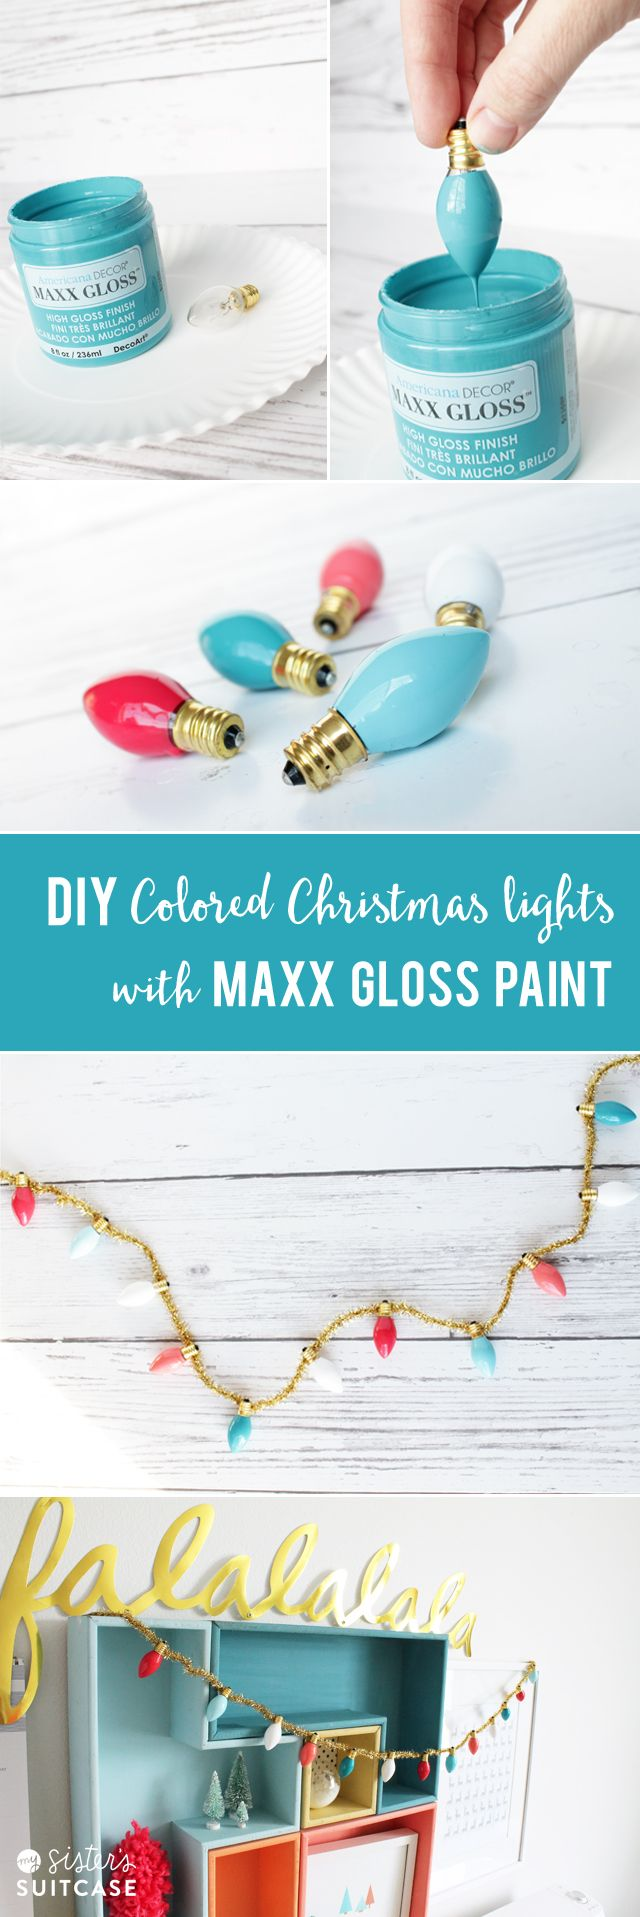 DIY Custom Vintage Christmas Lights